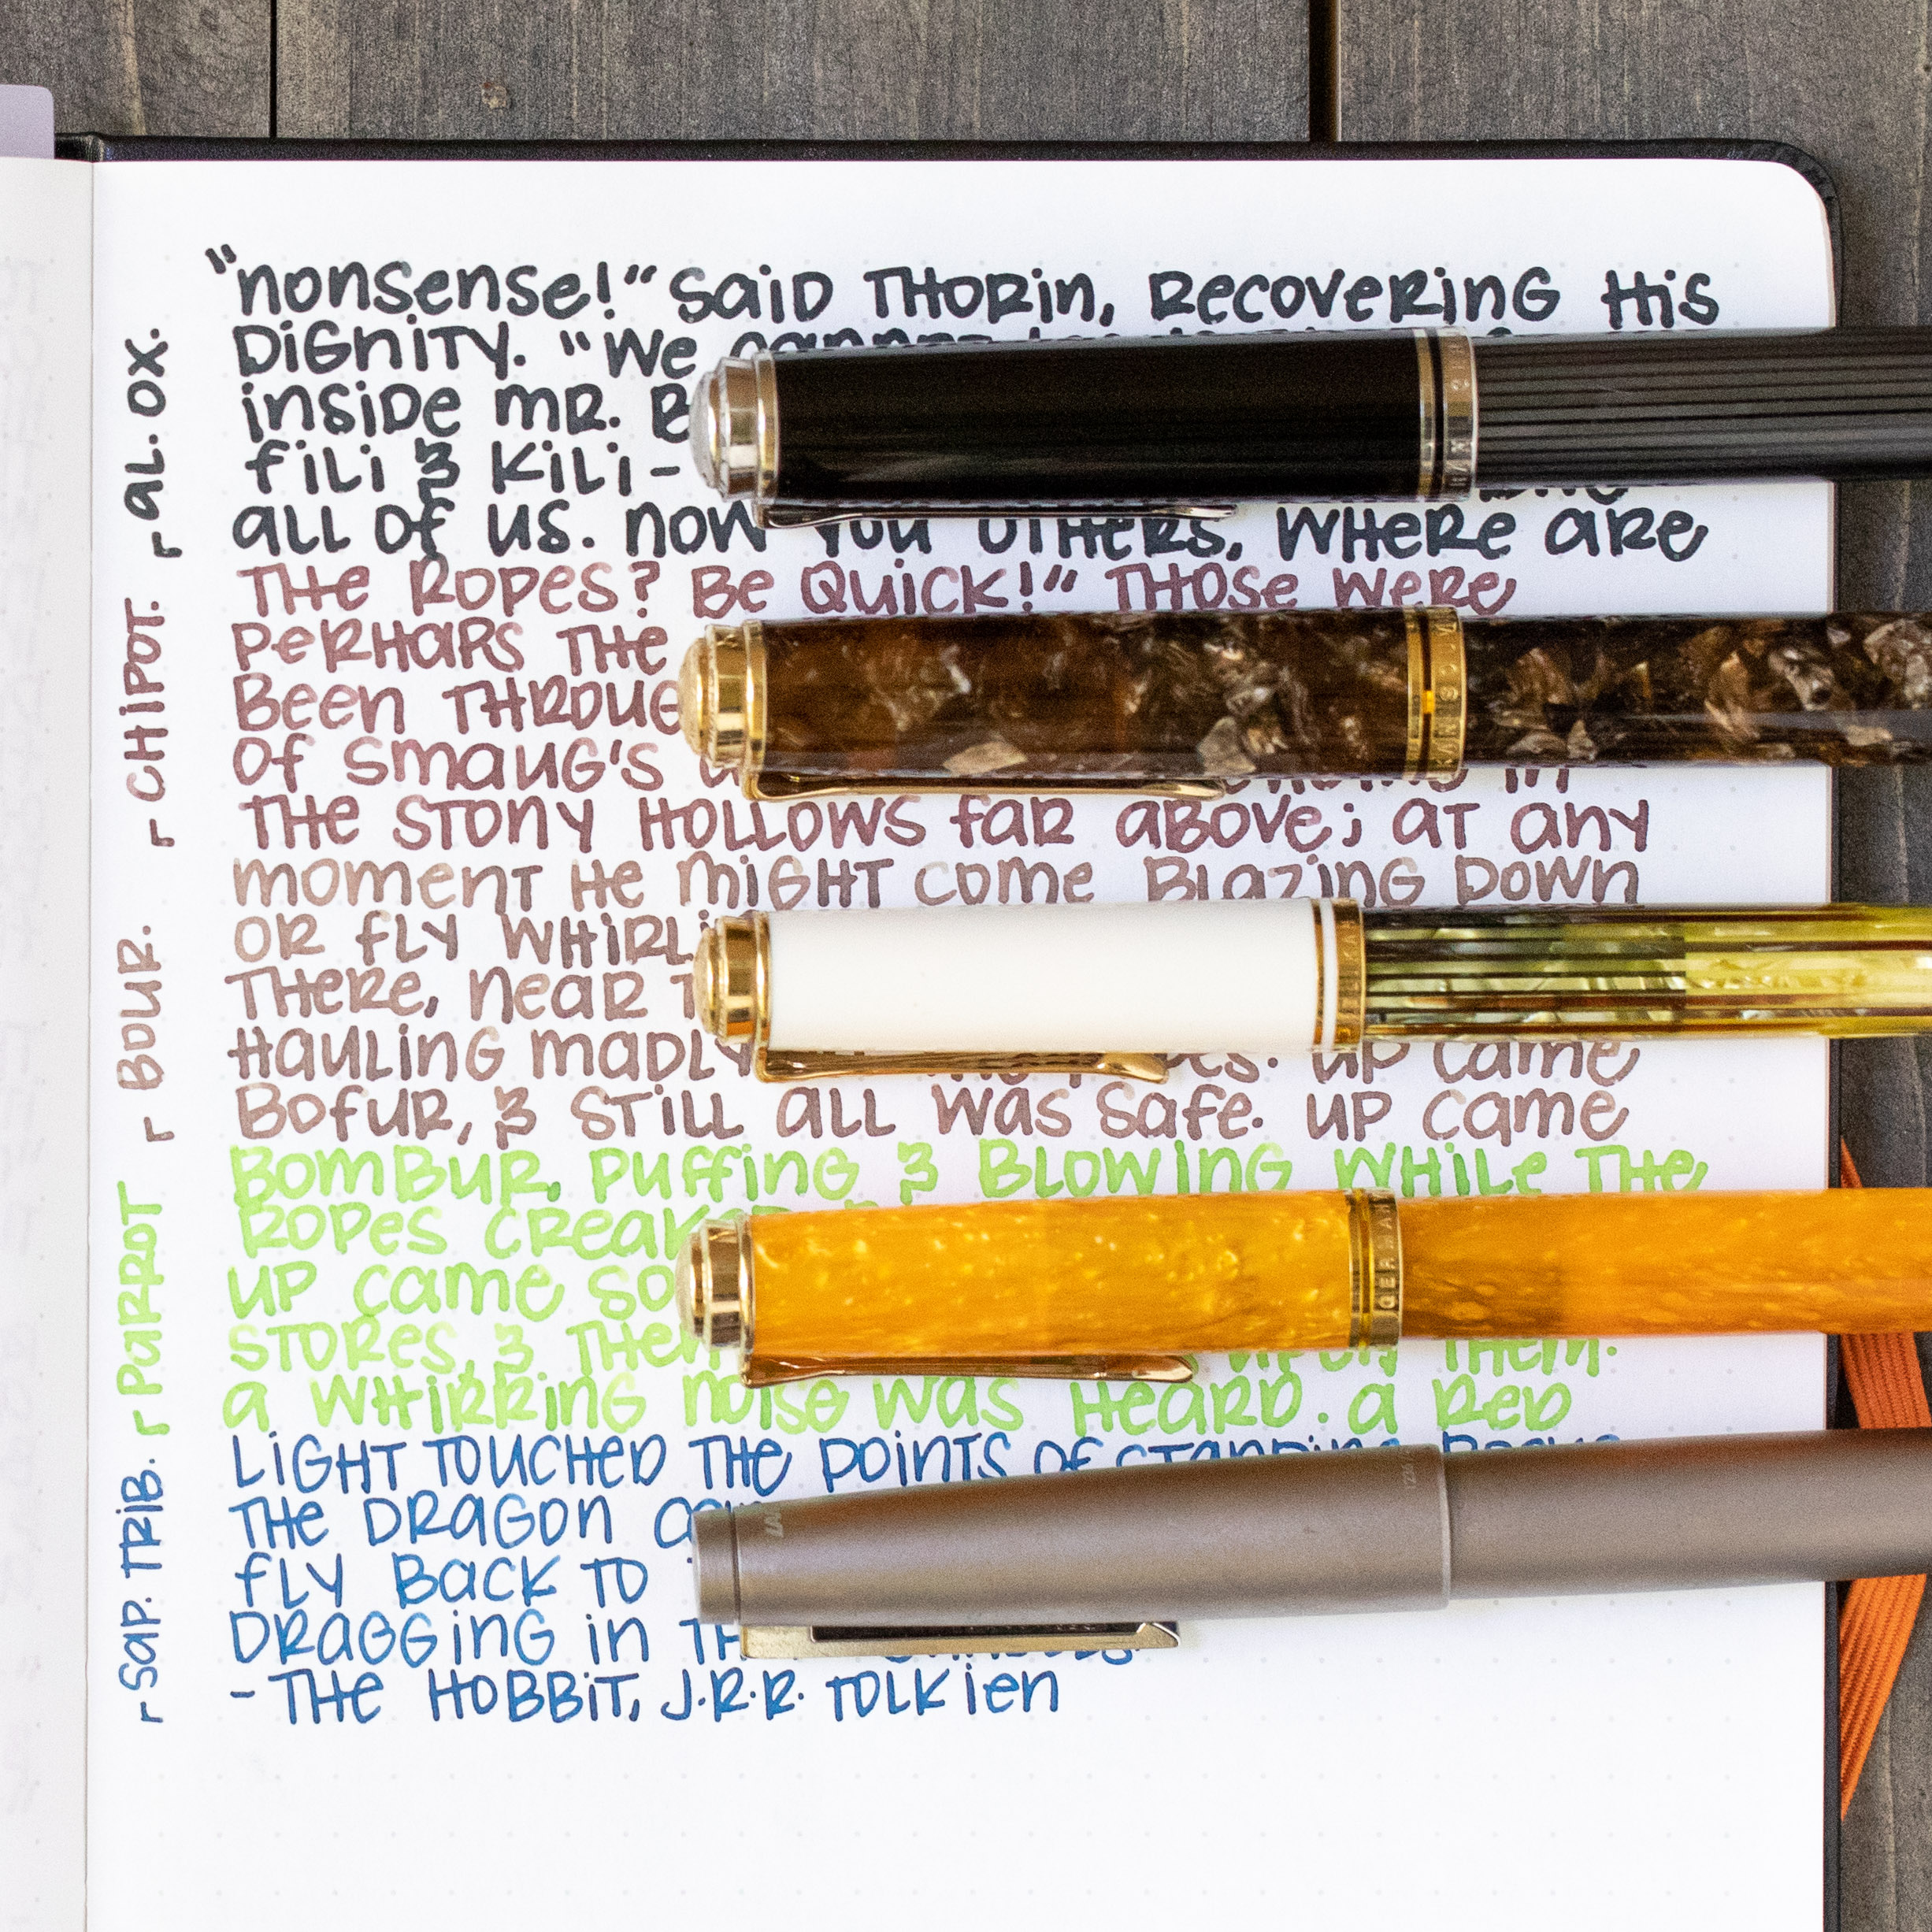 I used a Bond A5 (Tomoe River 68gsm). Top to bottom, I used: Pelikan M805 Stresemann with a medium nib, Pelikan M800 Renaissance Brown with a medium nib, Pelikan M400 White Tortoise with a medium nib, Pelikan M600 Vibrant Orange with a medium nib, and a Lamy 2000 Black Amber with a fine nib. All of the inks had an average flow, but the consistency was a bit thin, almost watery.